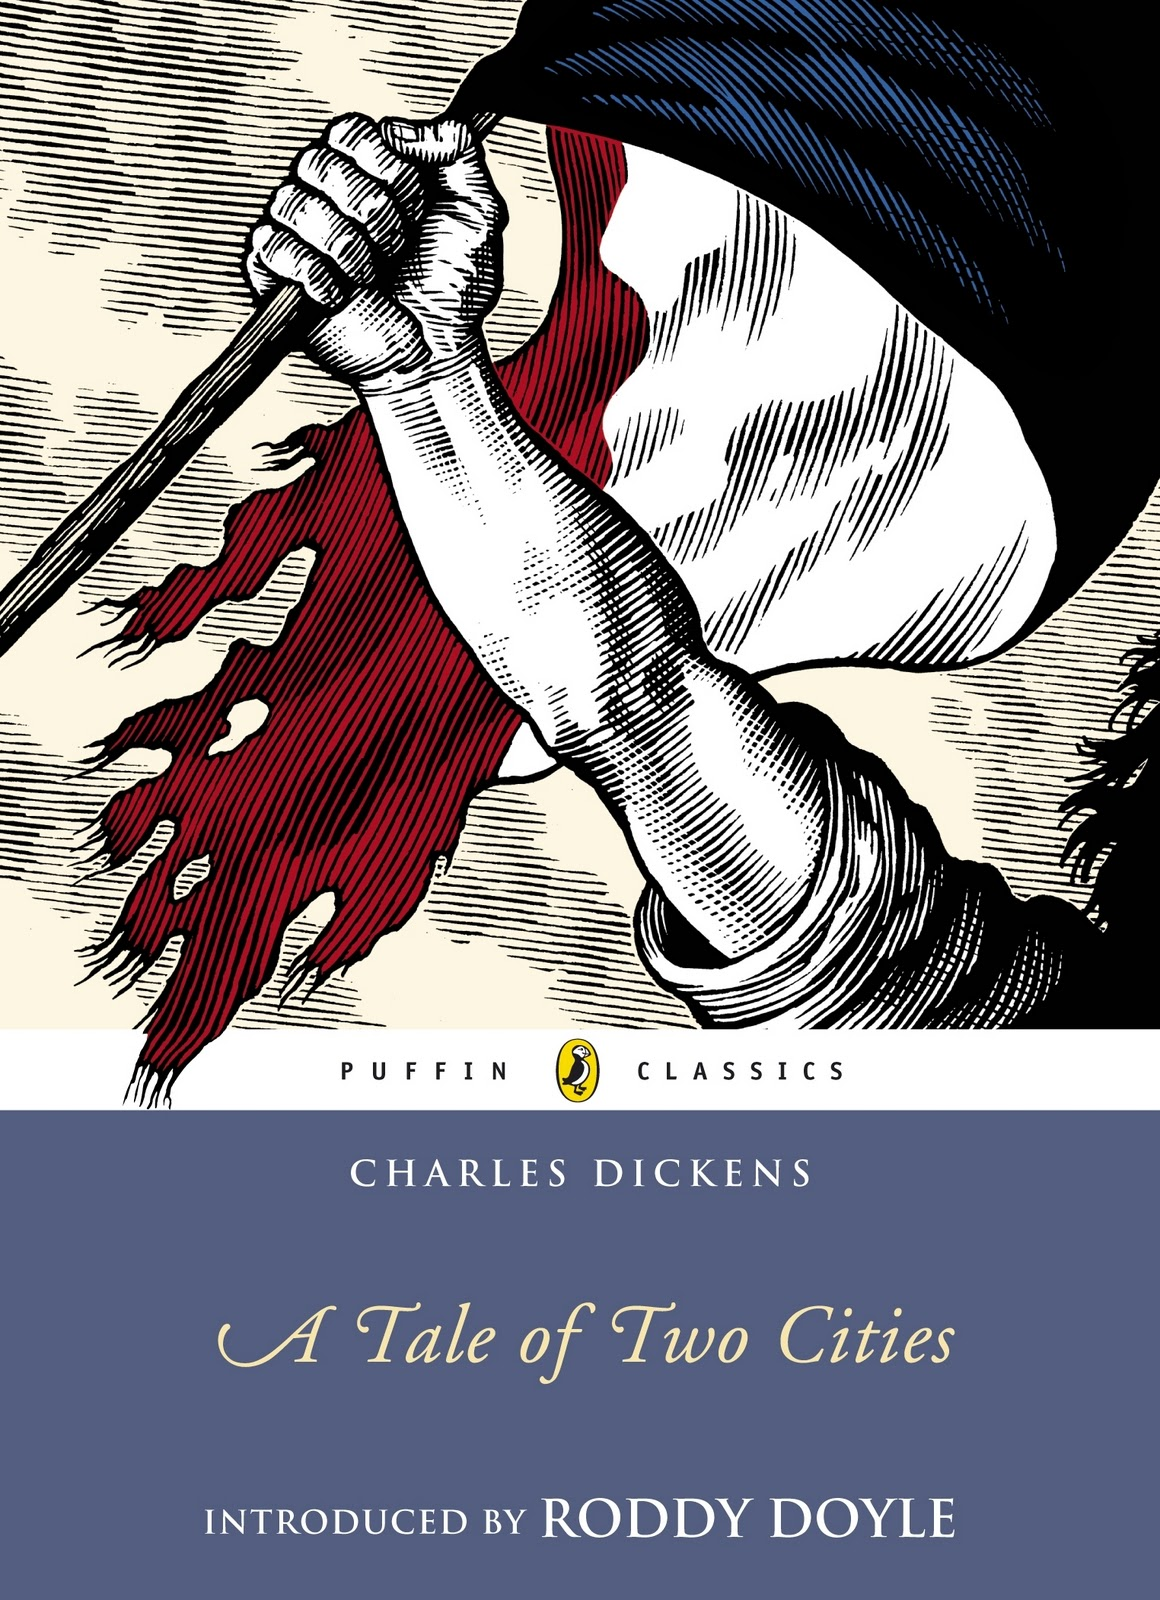 a tale of two cities charles dickens essays